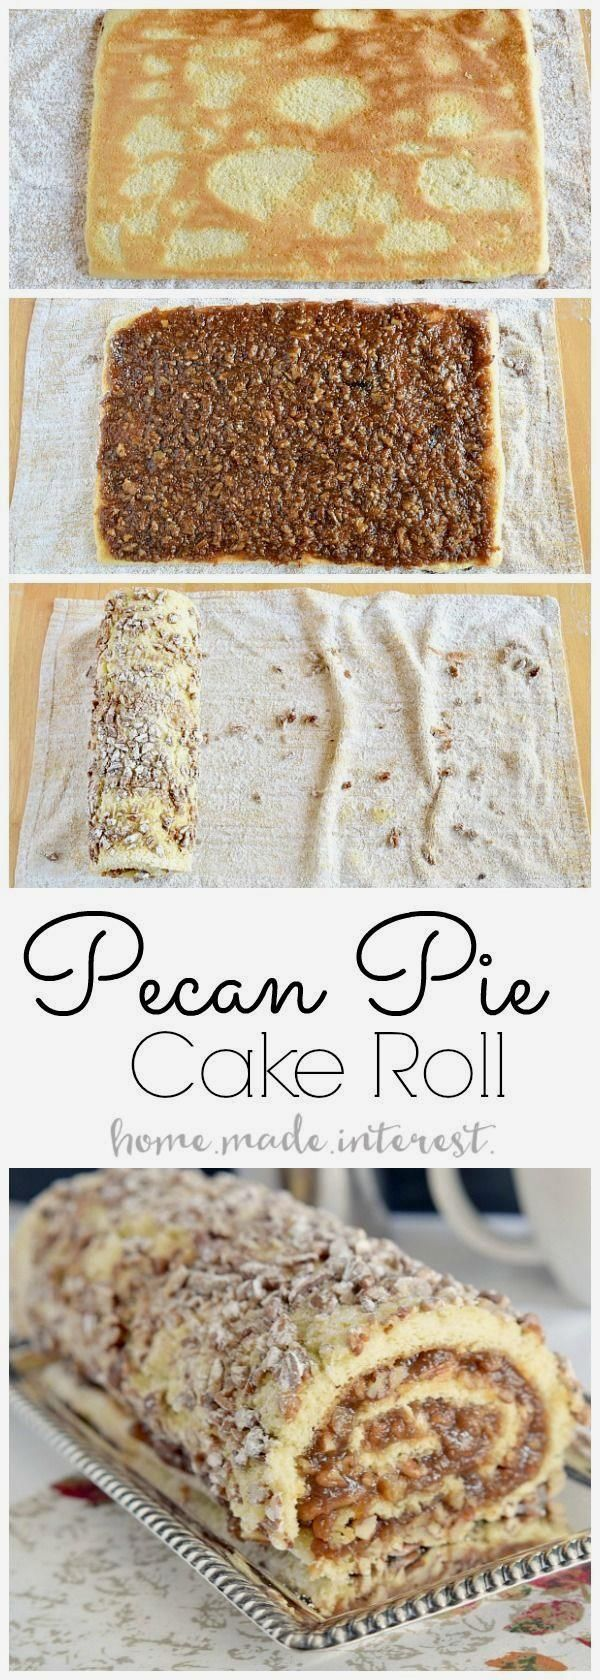 http://bestkitchenequipmentreviews.com/pressure-cooker/ Pecan pie filling rolled into a light sponge cake make this…